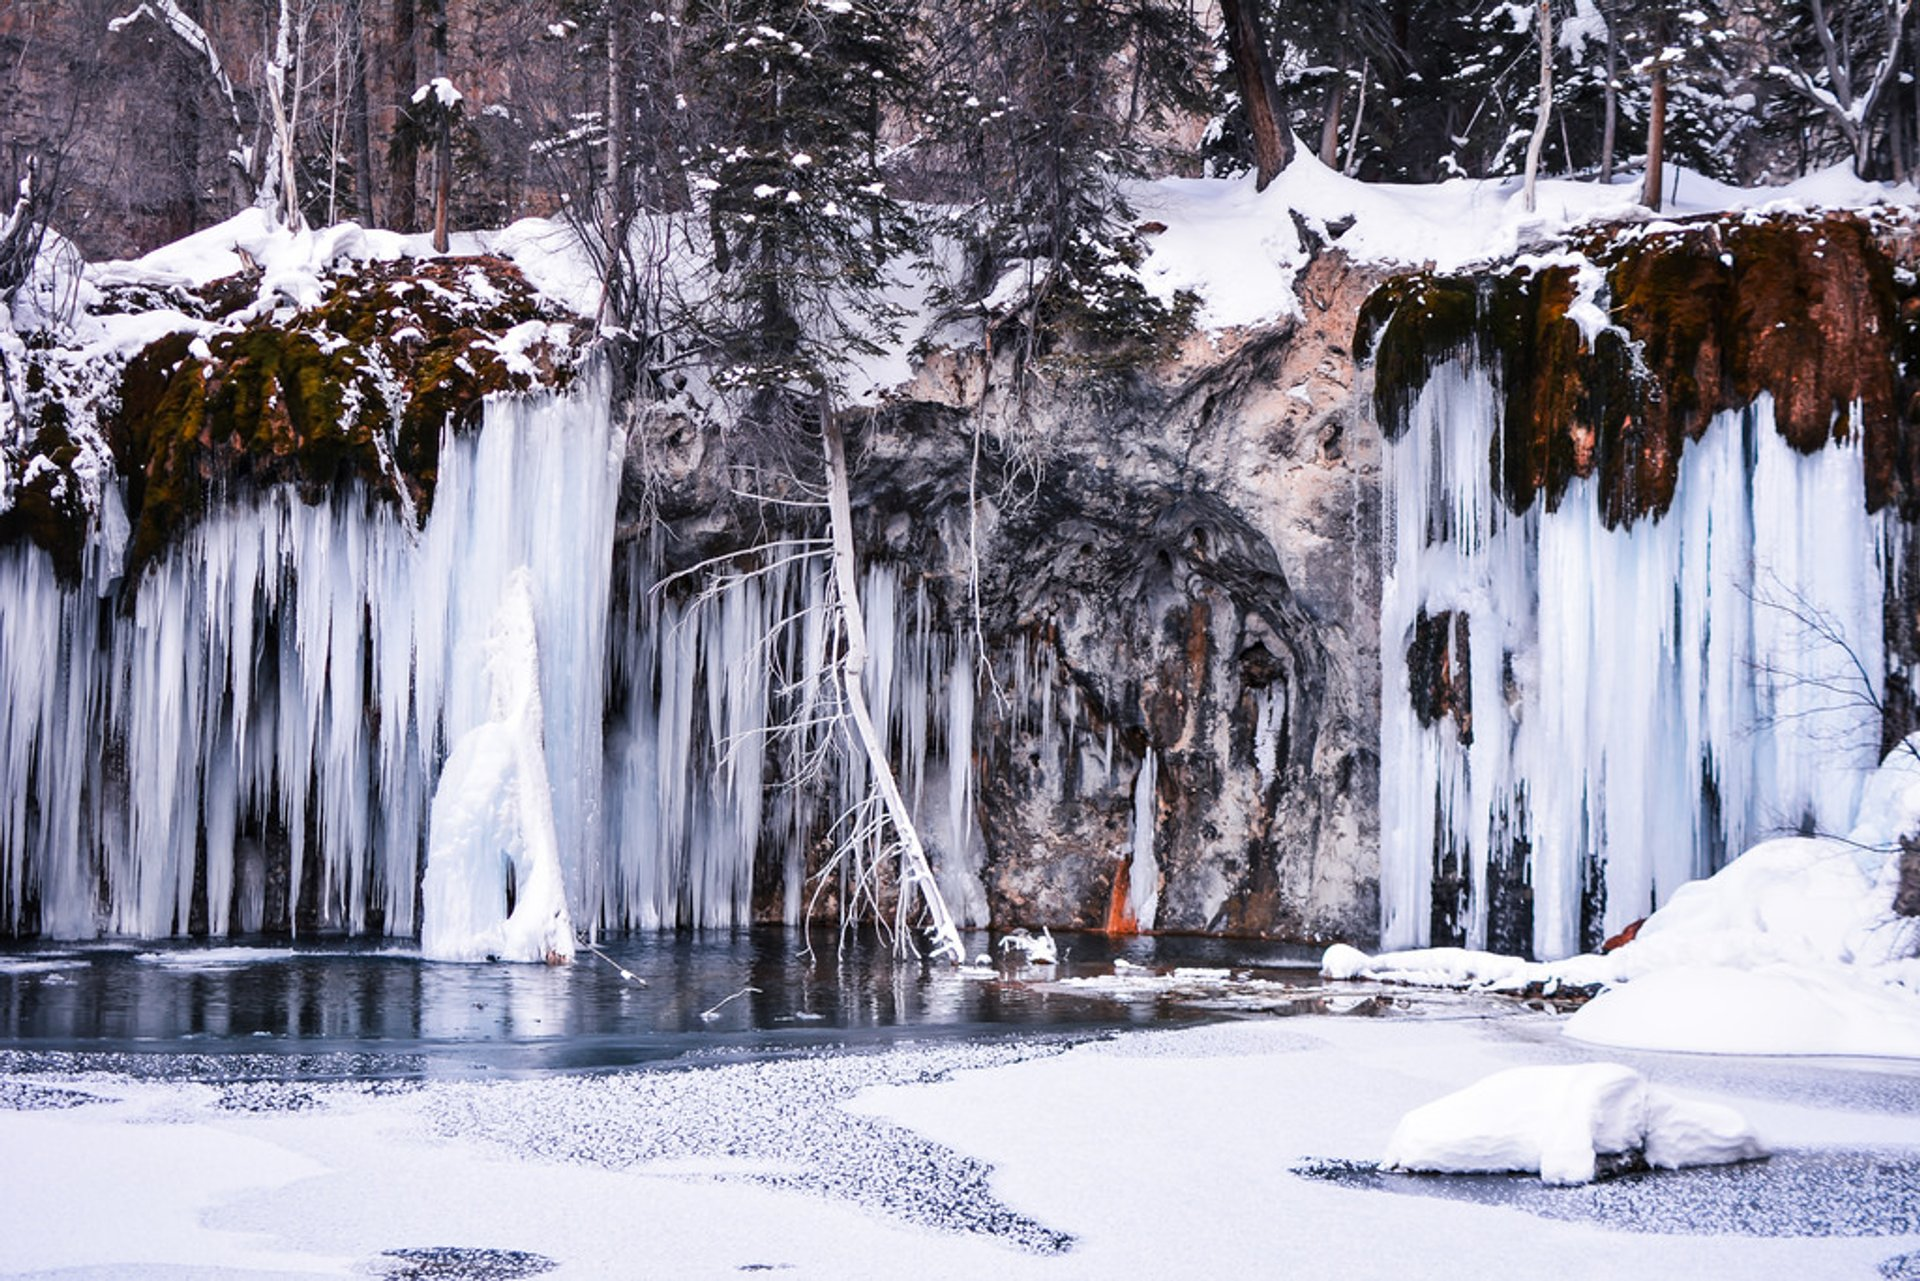 Frozen Waterfalls in Colorado 2019 - Best Time